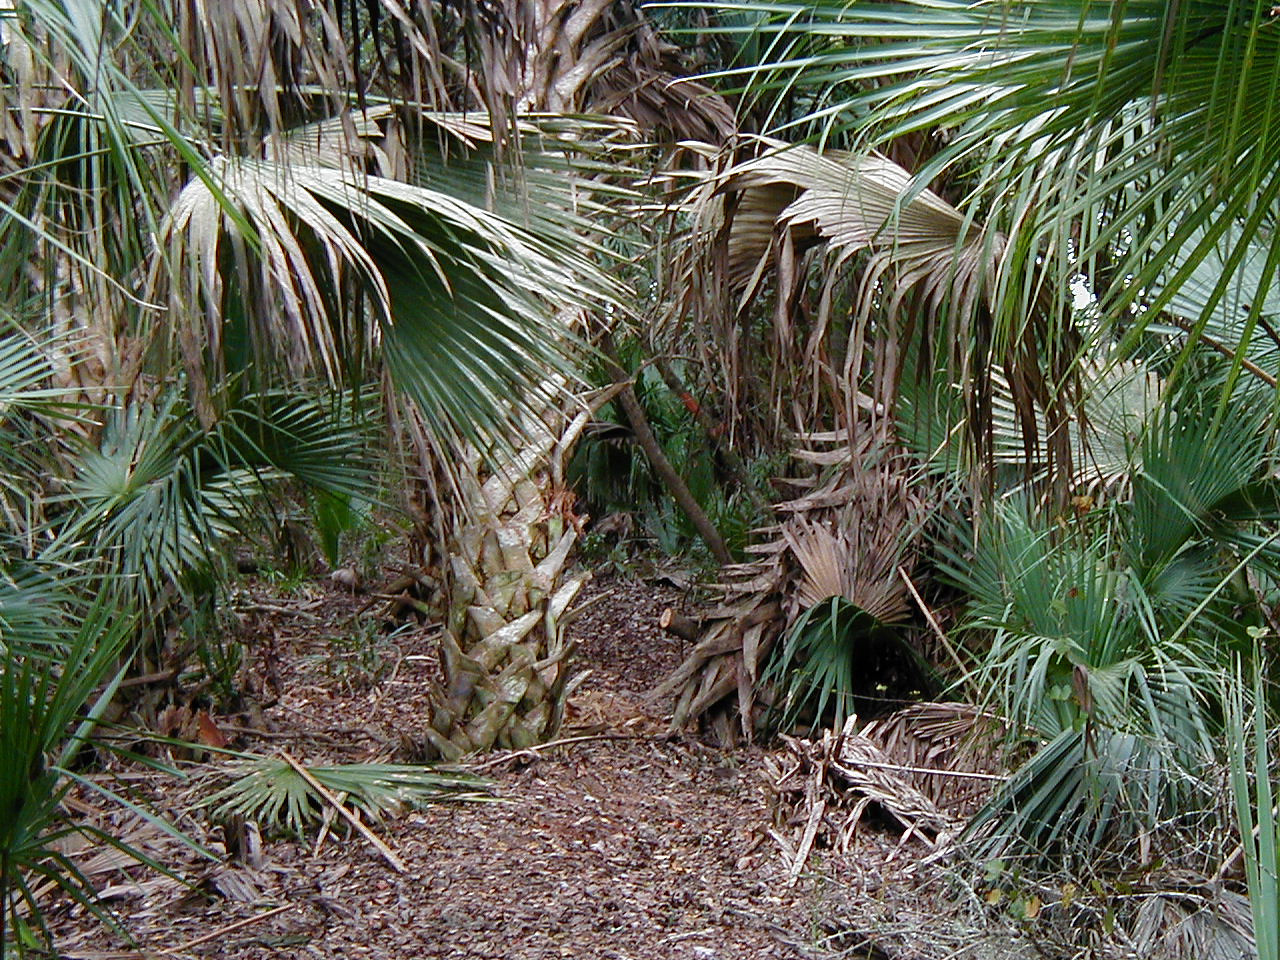 Florida Trail winds through a tangle of palm hammock in Seminole State Forest, west of Sanford along SR 46<br /> PHOTO CREDIT: Deb Blick / Florida Trail Association